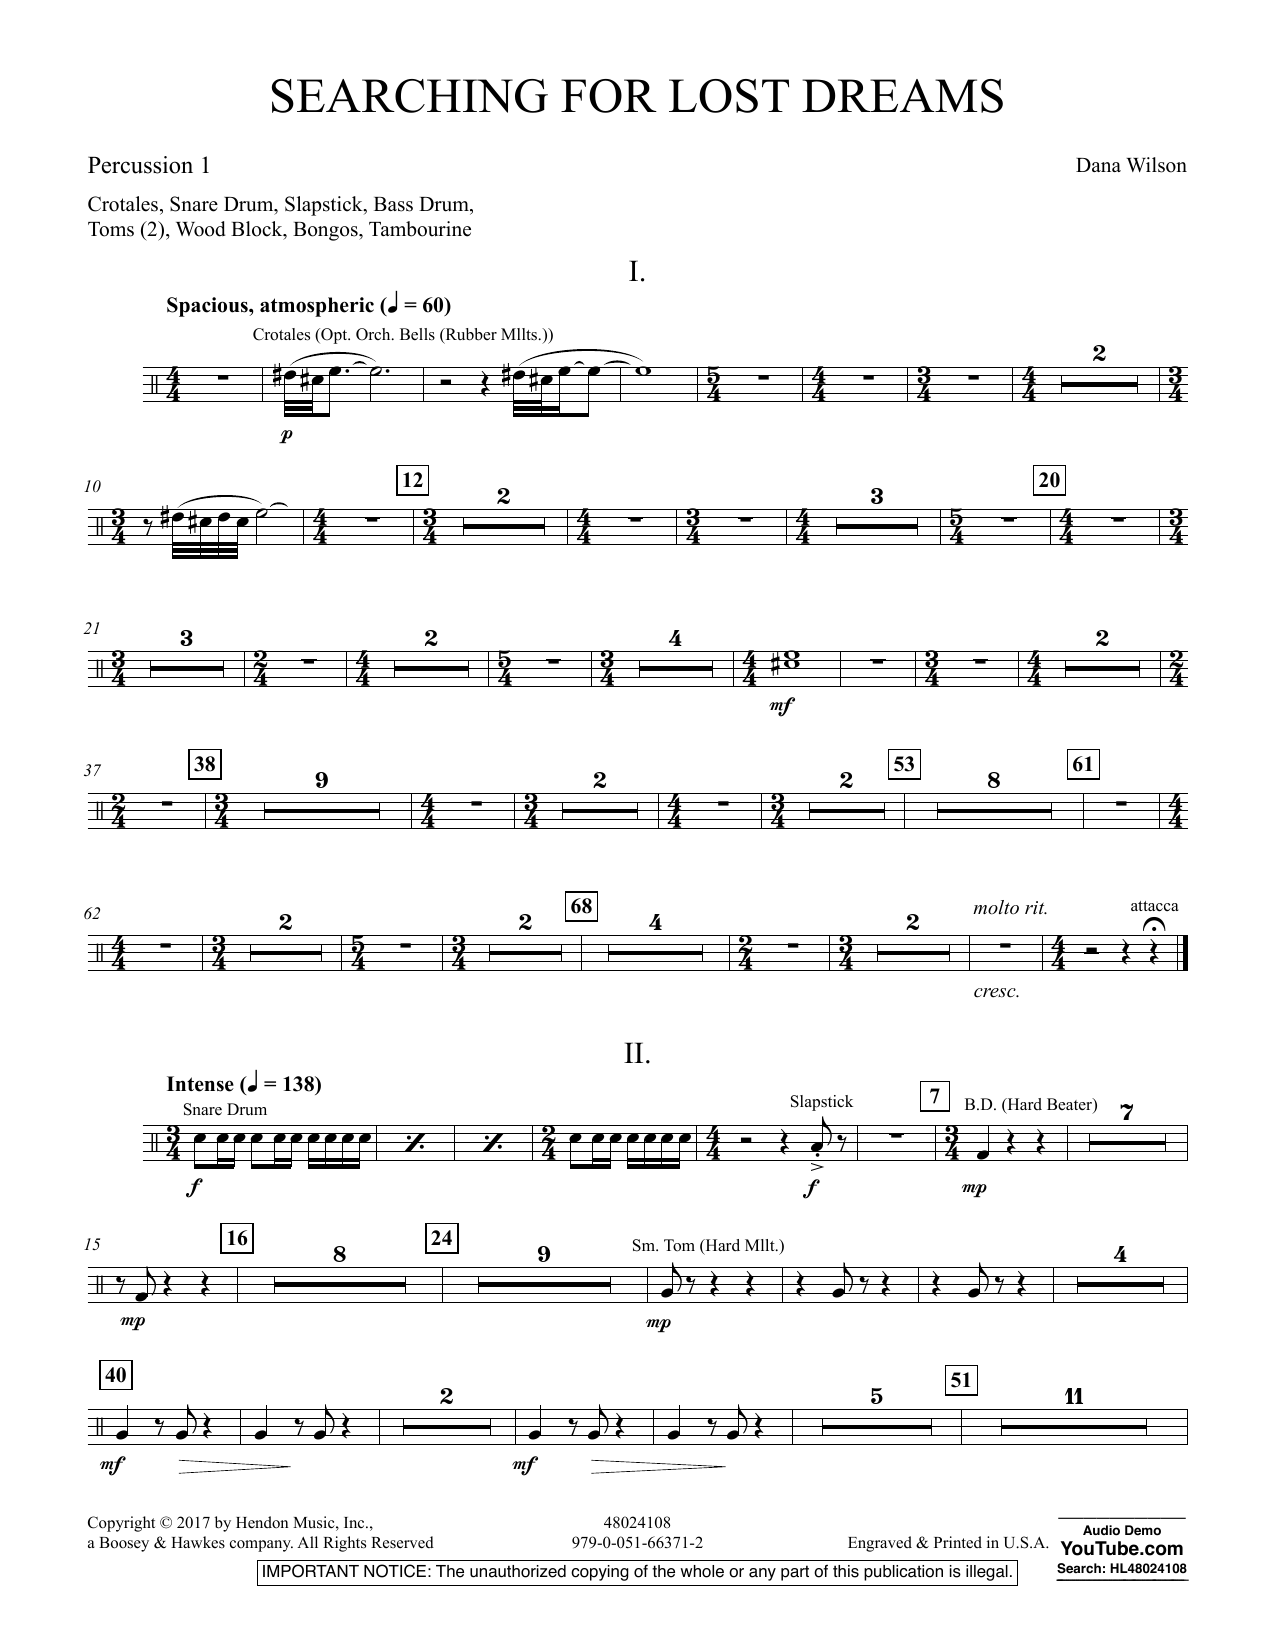 Searching for Lost Dreams - Percussion 1 (Concert Band)